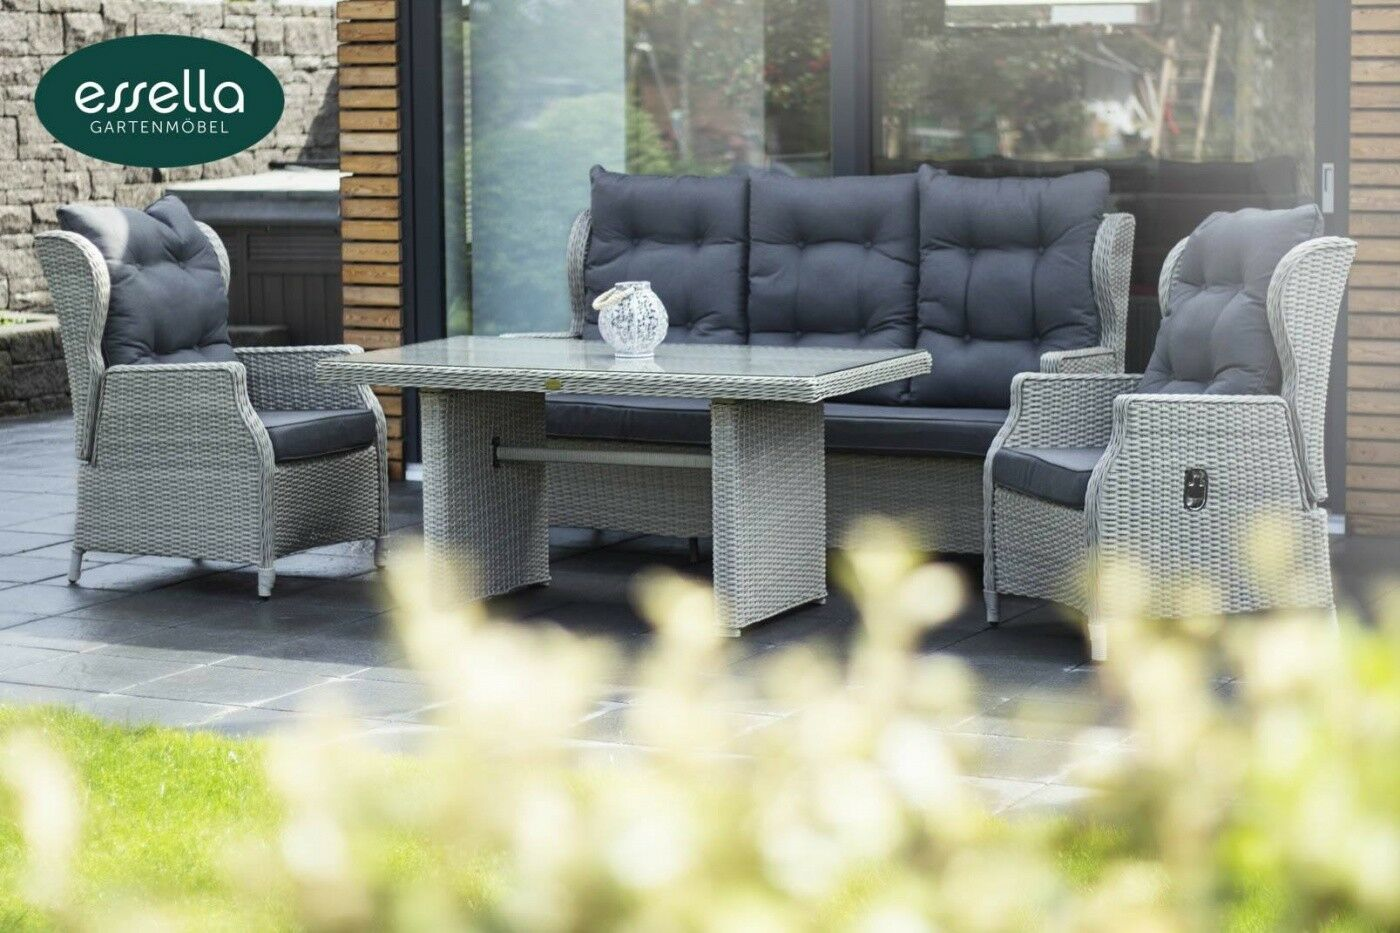 essella polyrattan sitzgruppe dining lounge gruppe sessel bank gartenm bel set eur. Black Bedroom Furniture Sets. Home Design Ideas